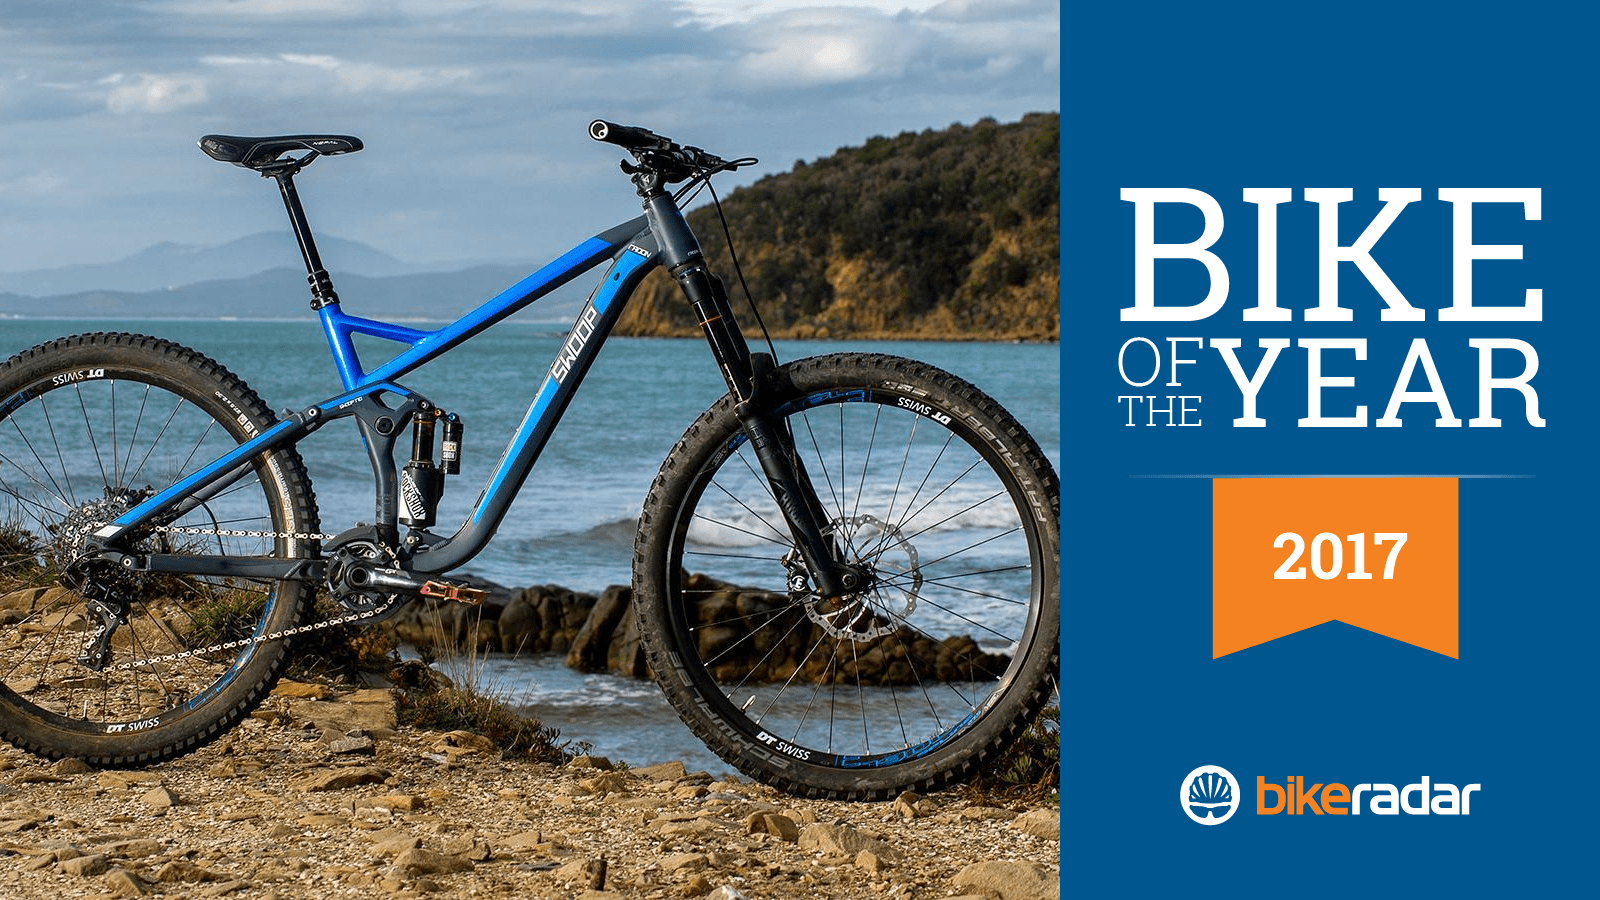 The Radon Swoop 170 8.0 is our tester's pick for the Best Enduro Bike of 2017